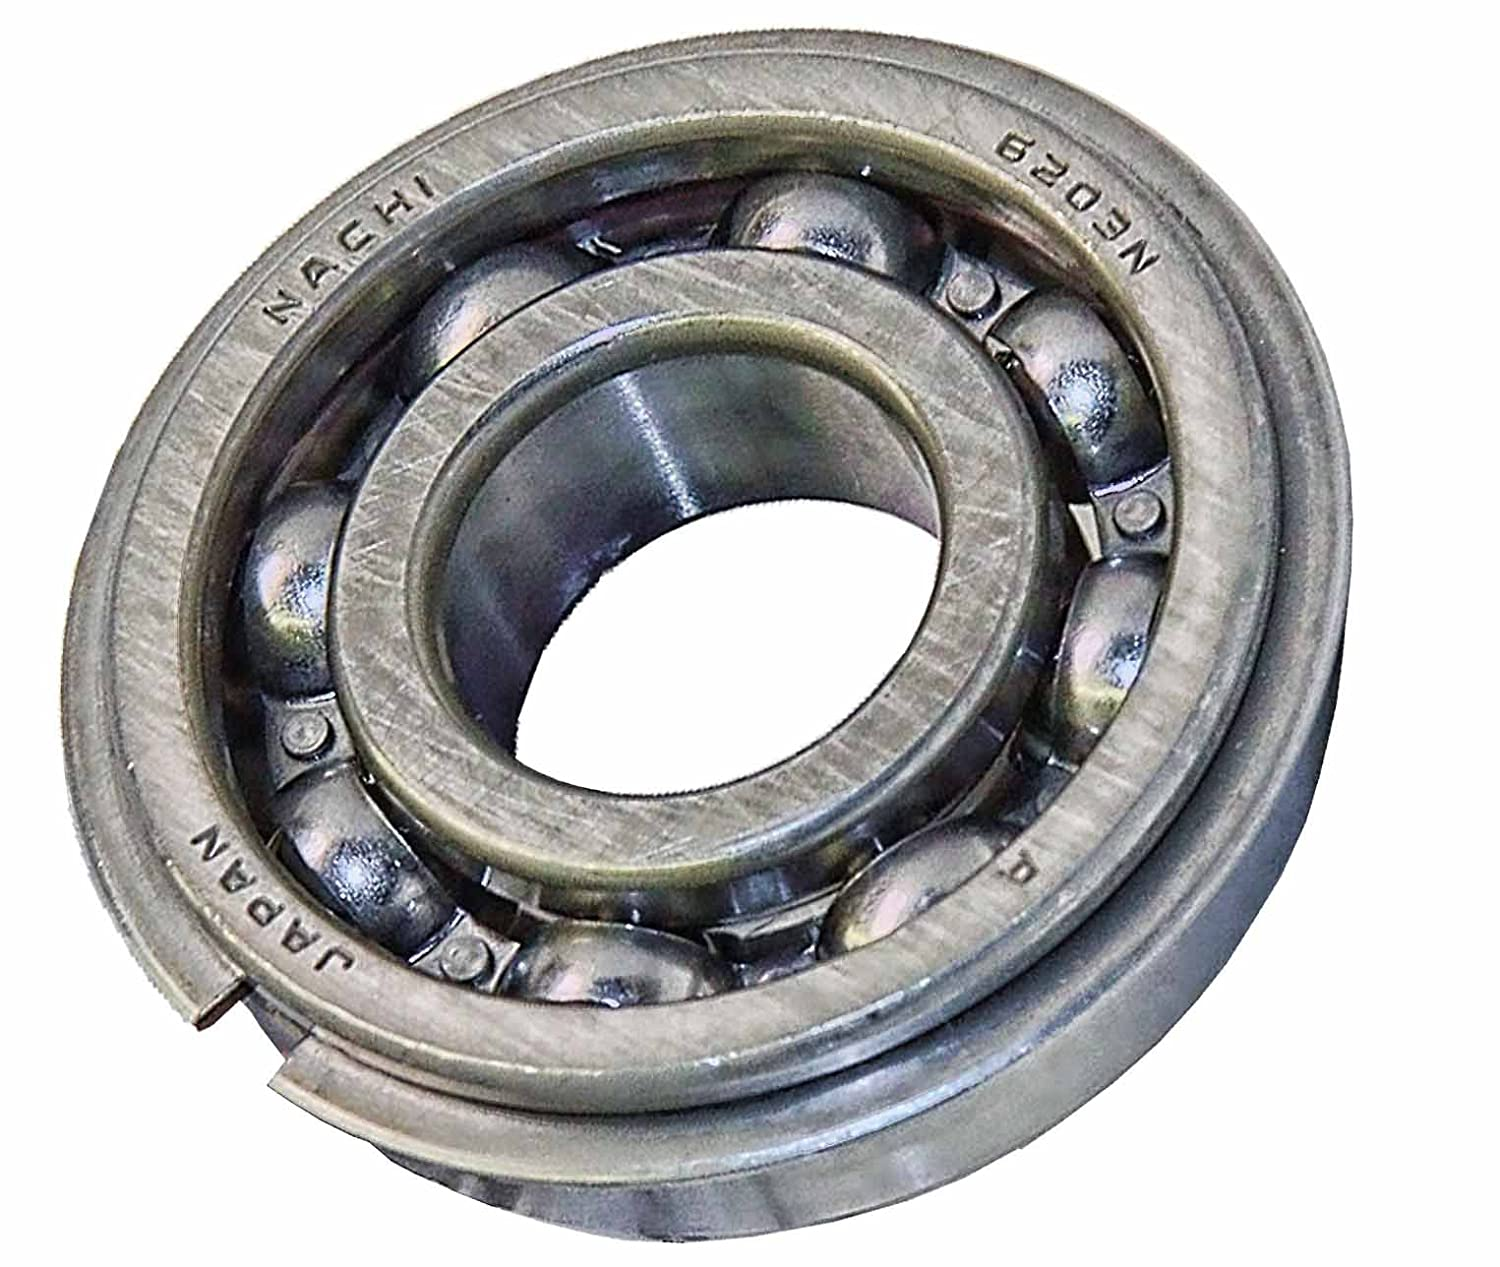 NO-LOGO CMM-Y S6910ZZ S6910Z Thin Section Bearing 5PCS ABEC-1 440C S 6910 Z ZZ S6910 Stainless Steel Ball Bearings 507212 mm